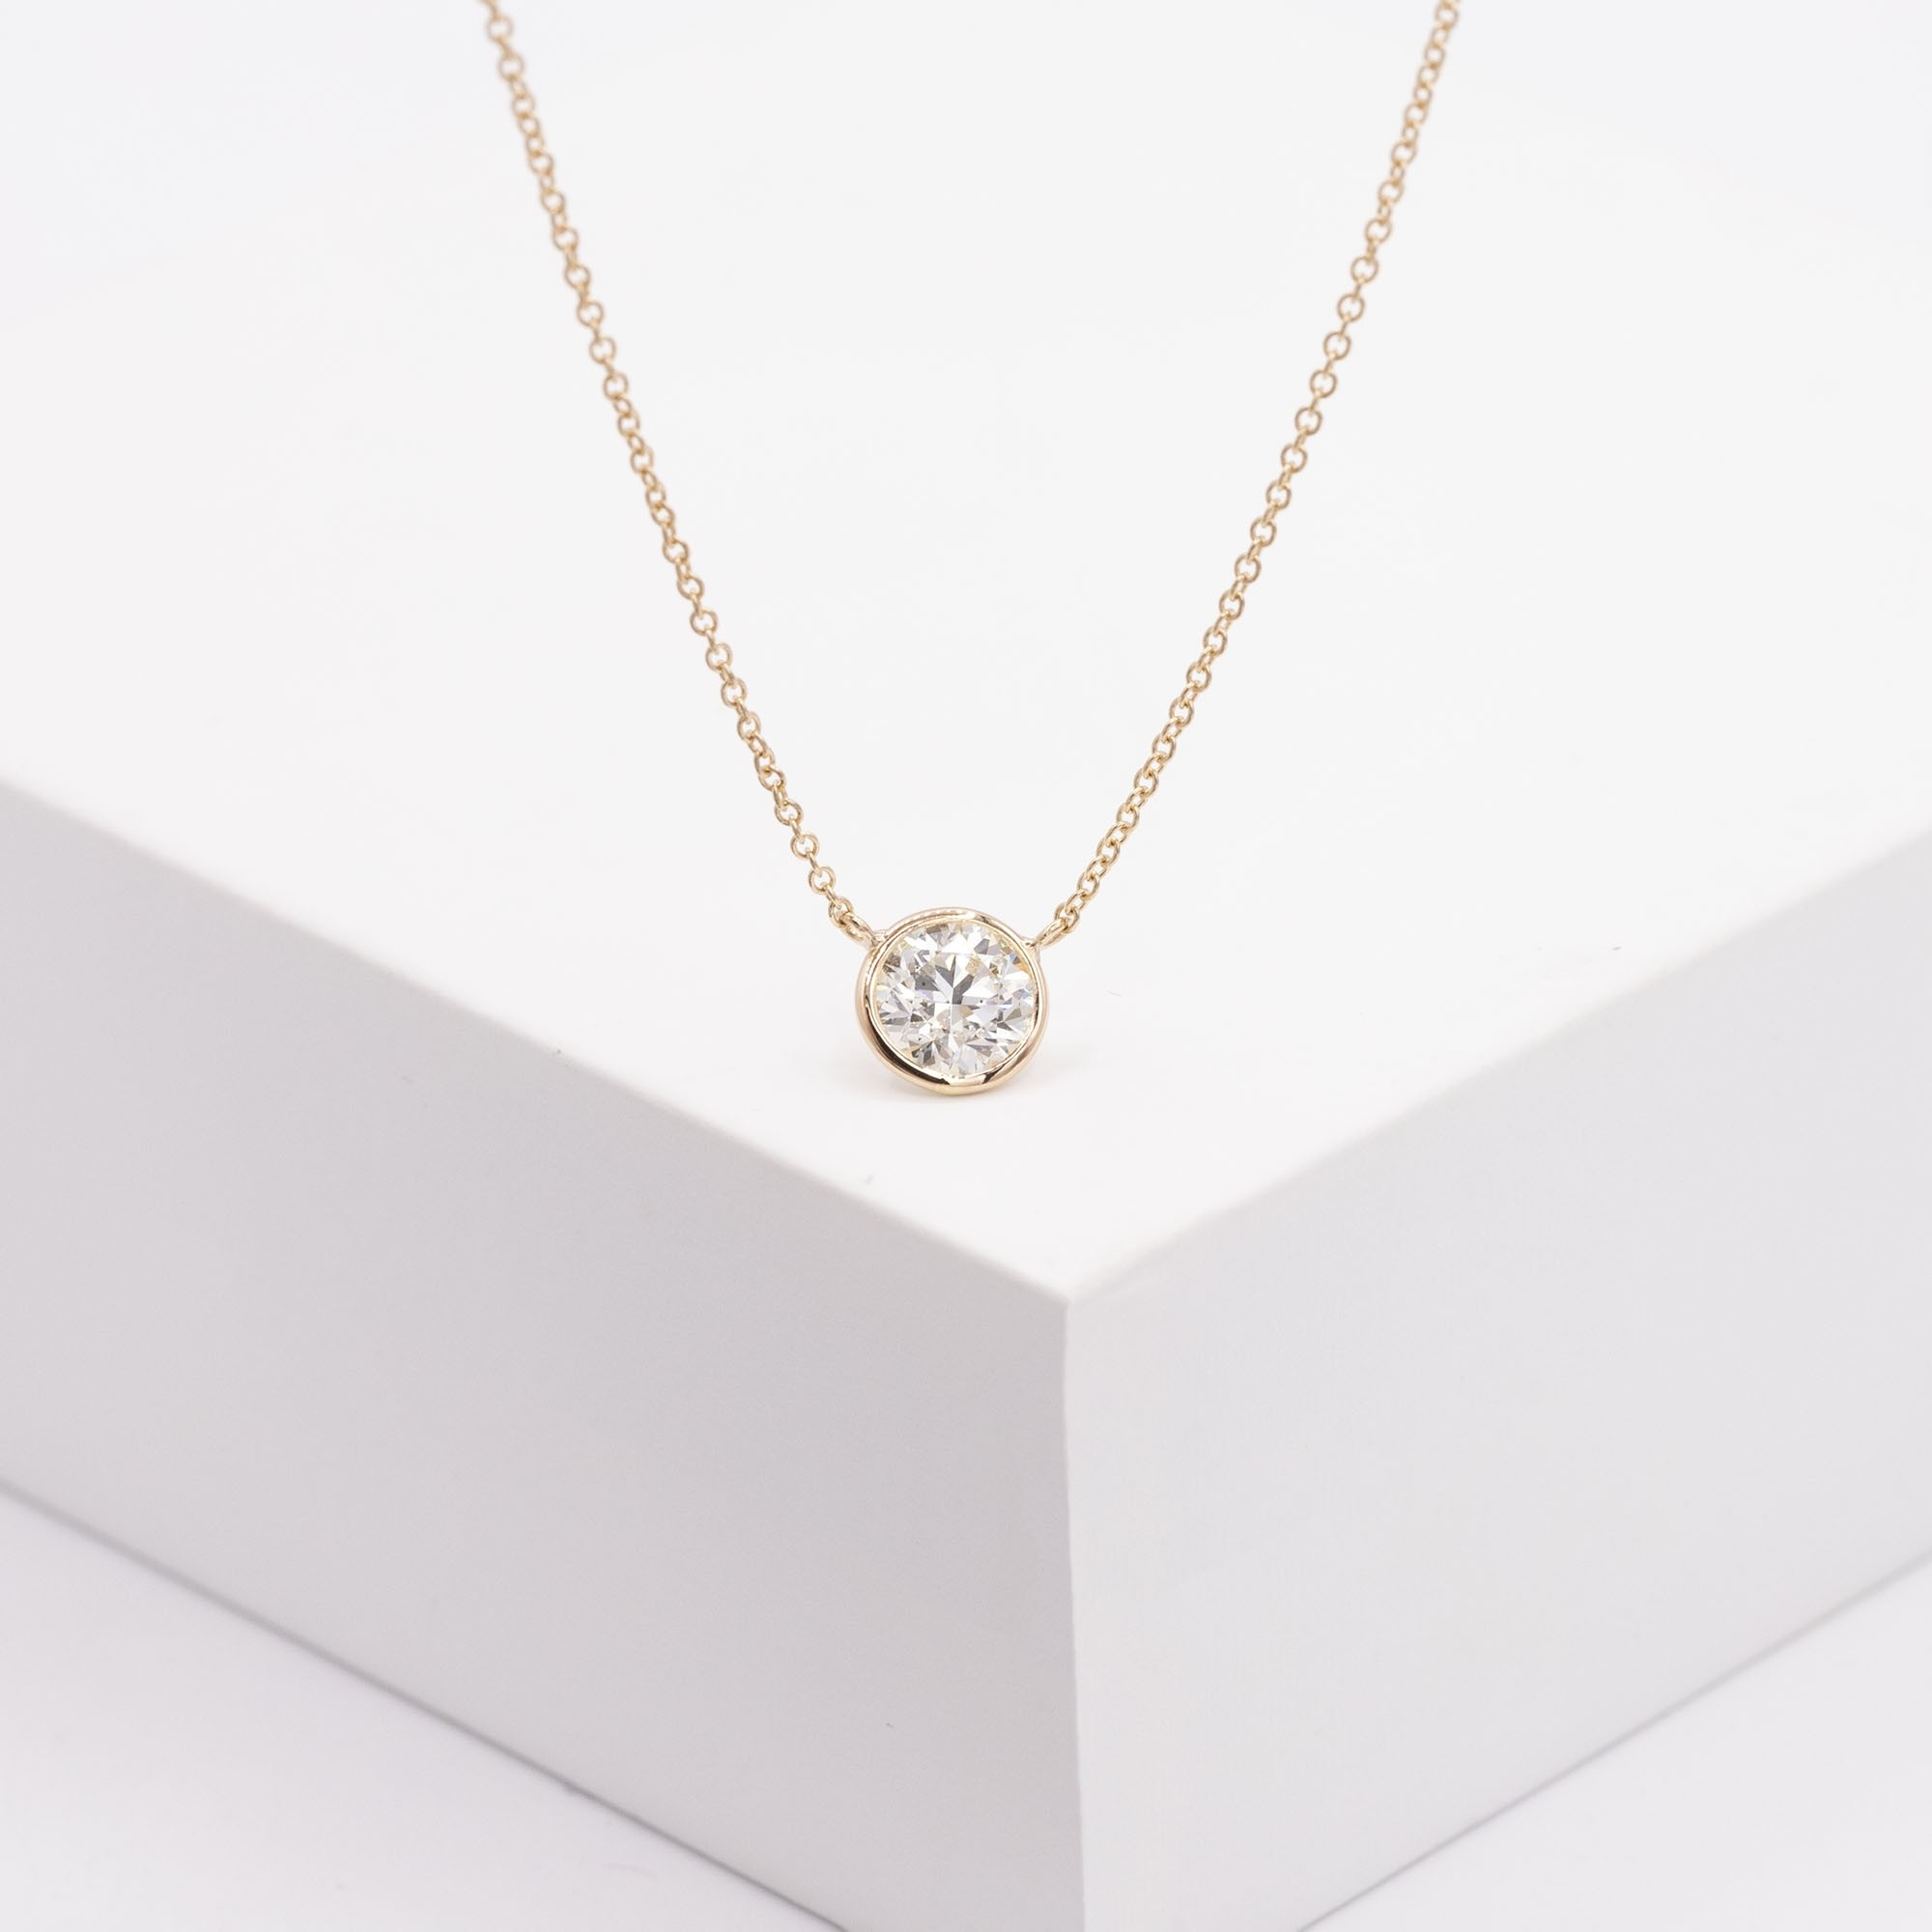 18KT ROSE GOLD BEZEL SET DIAMOND PENDANT